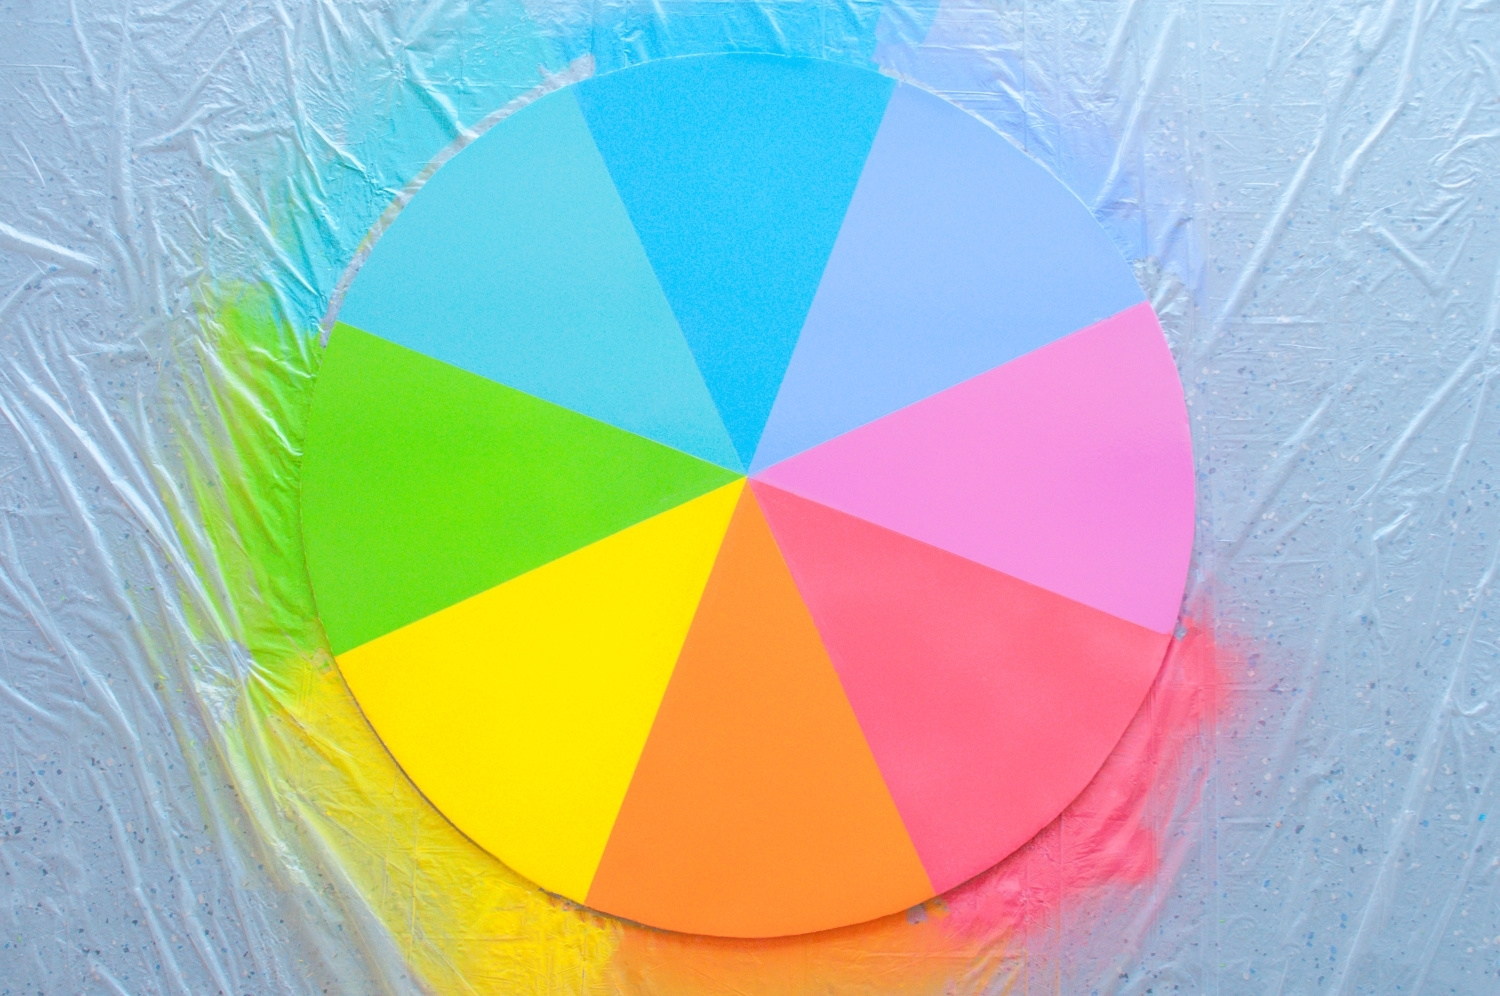 Let color wheel dry completely